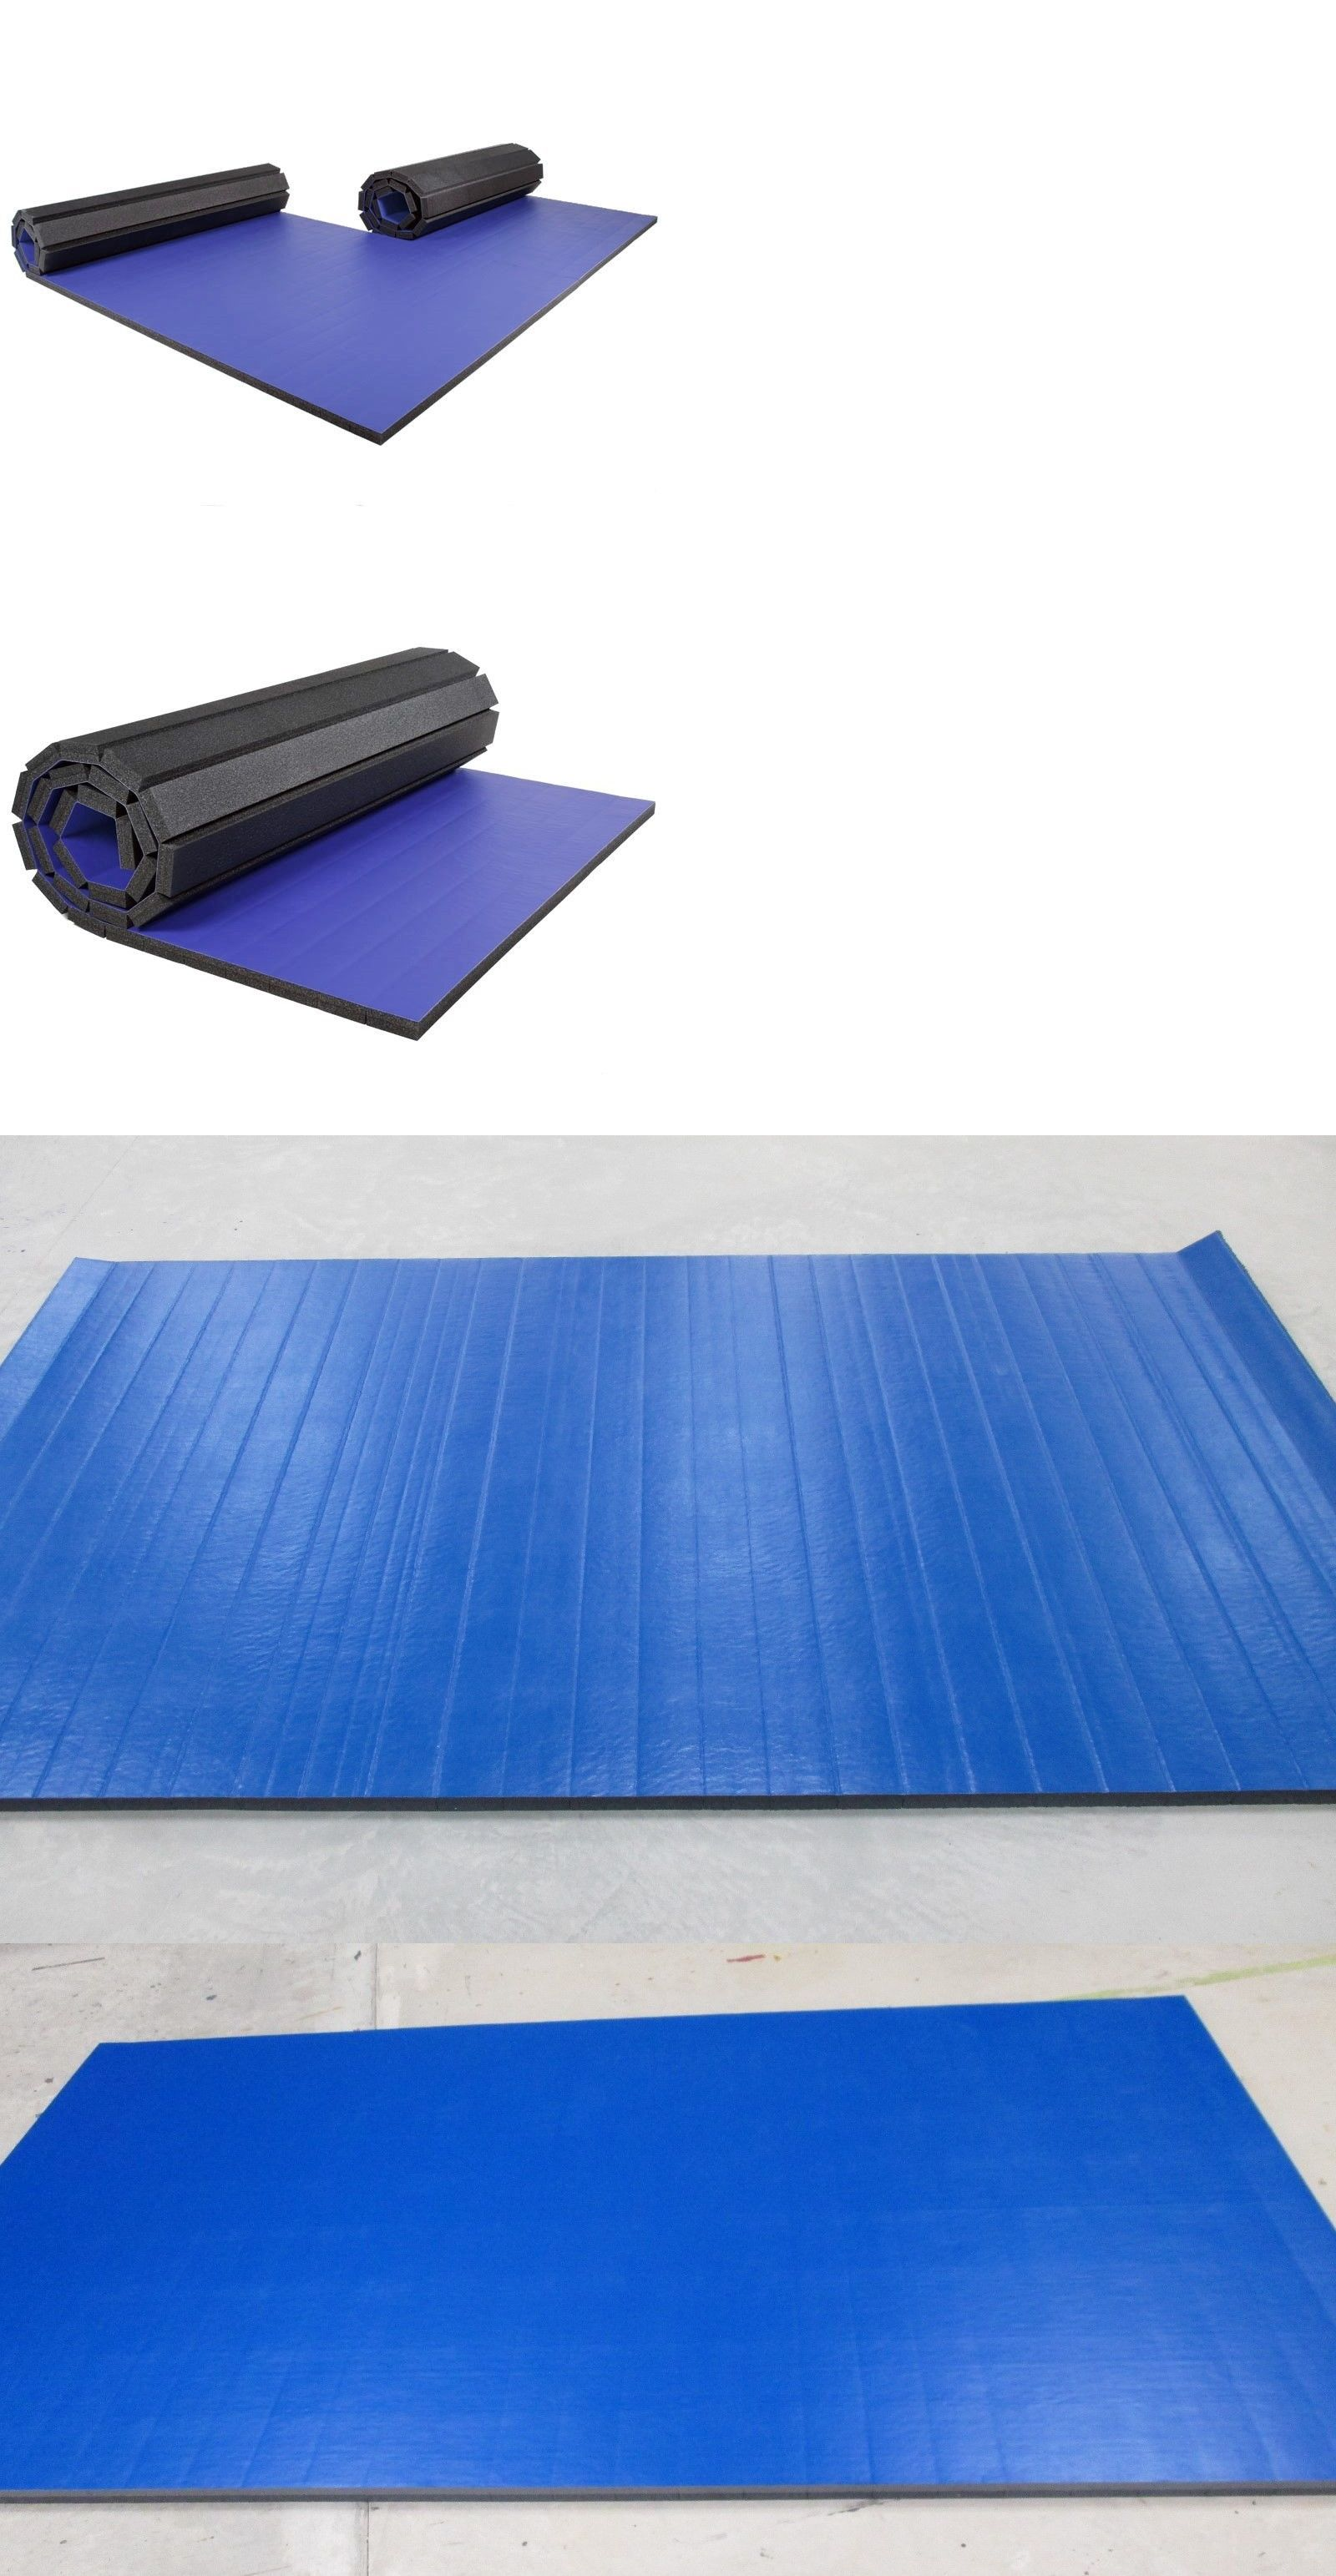 com yoga best stretching ip products aerobics used gymnastics walmart choice gym exercise folding blue mats for mat sale